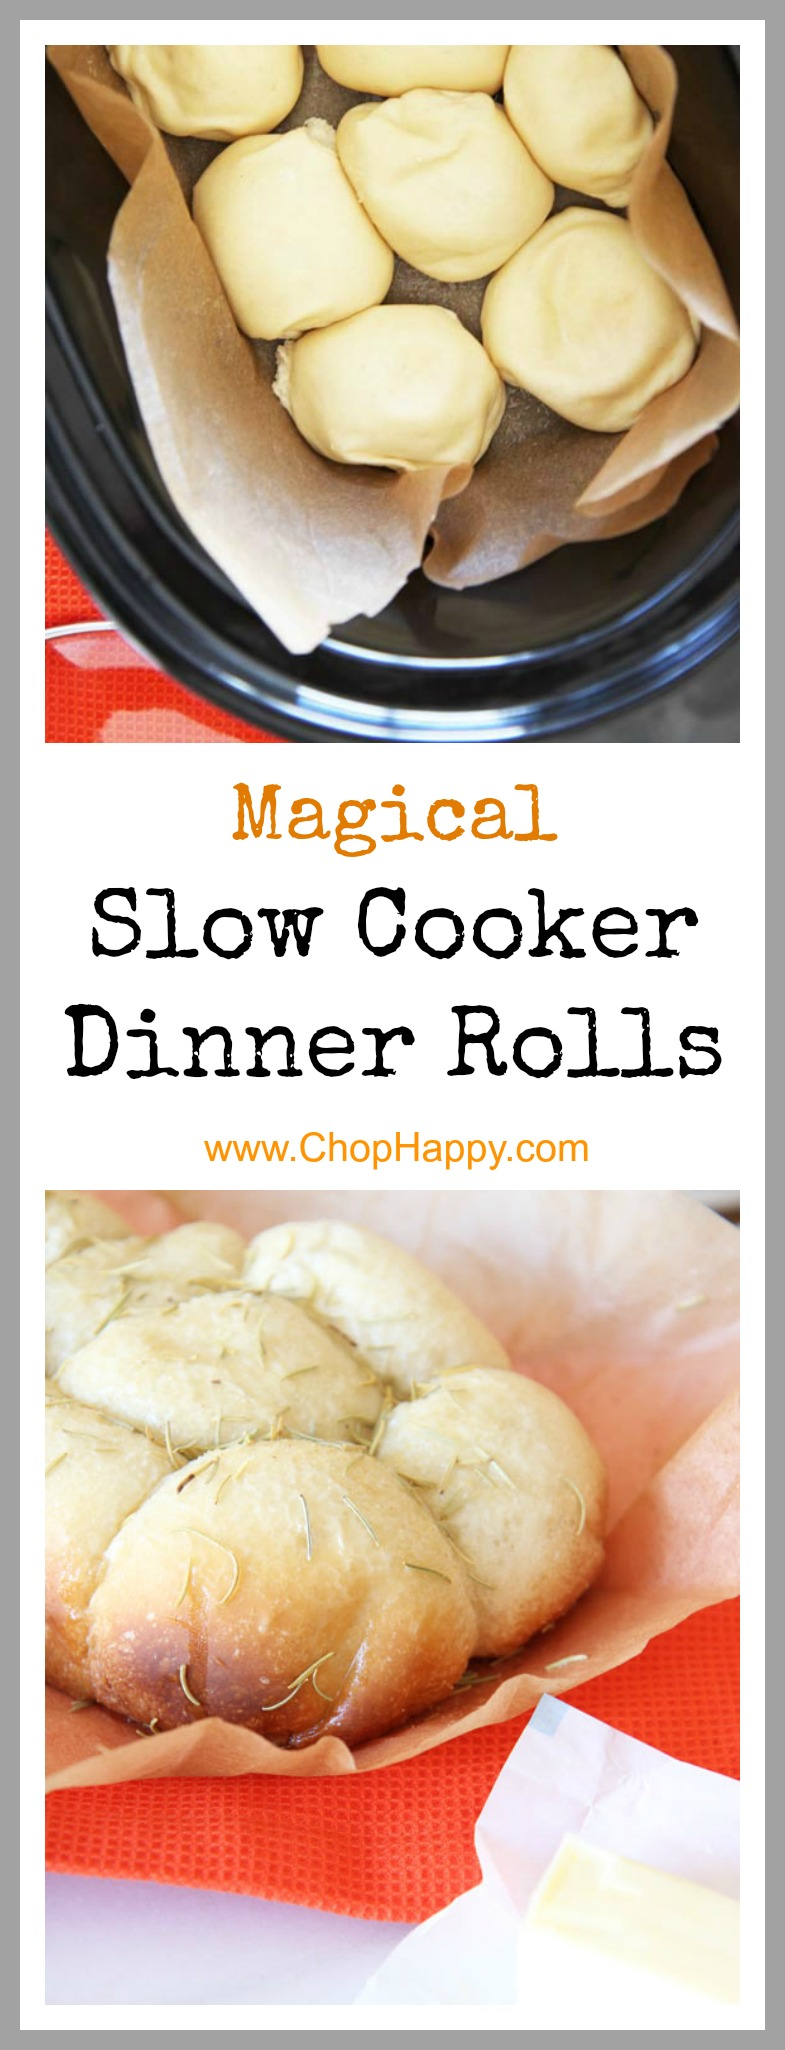 Slow Cooker Dinner Rolls Recipe - is so easy and makes more room in the oven. Grab dinner roll dough, garlic, rosemary, and a slow cooker (crock pot). This is magically awesome comfort food. www.ChopHappy.com #dinnerrolls